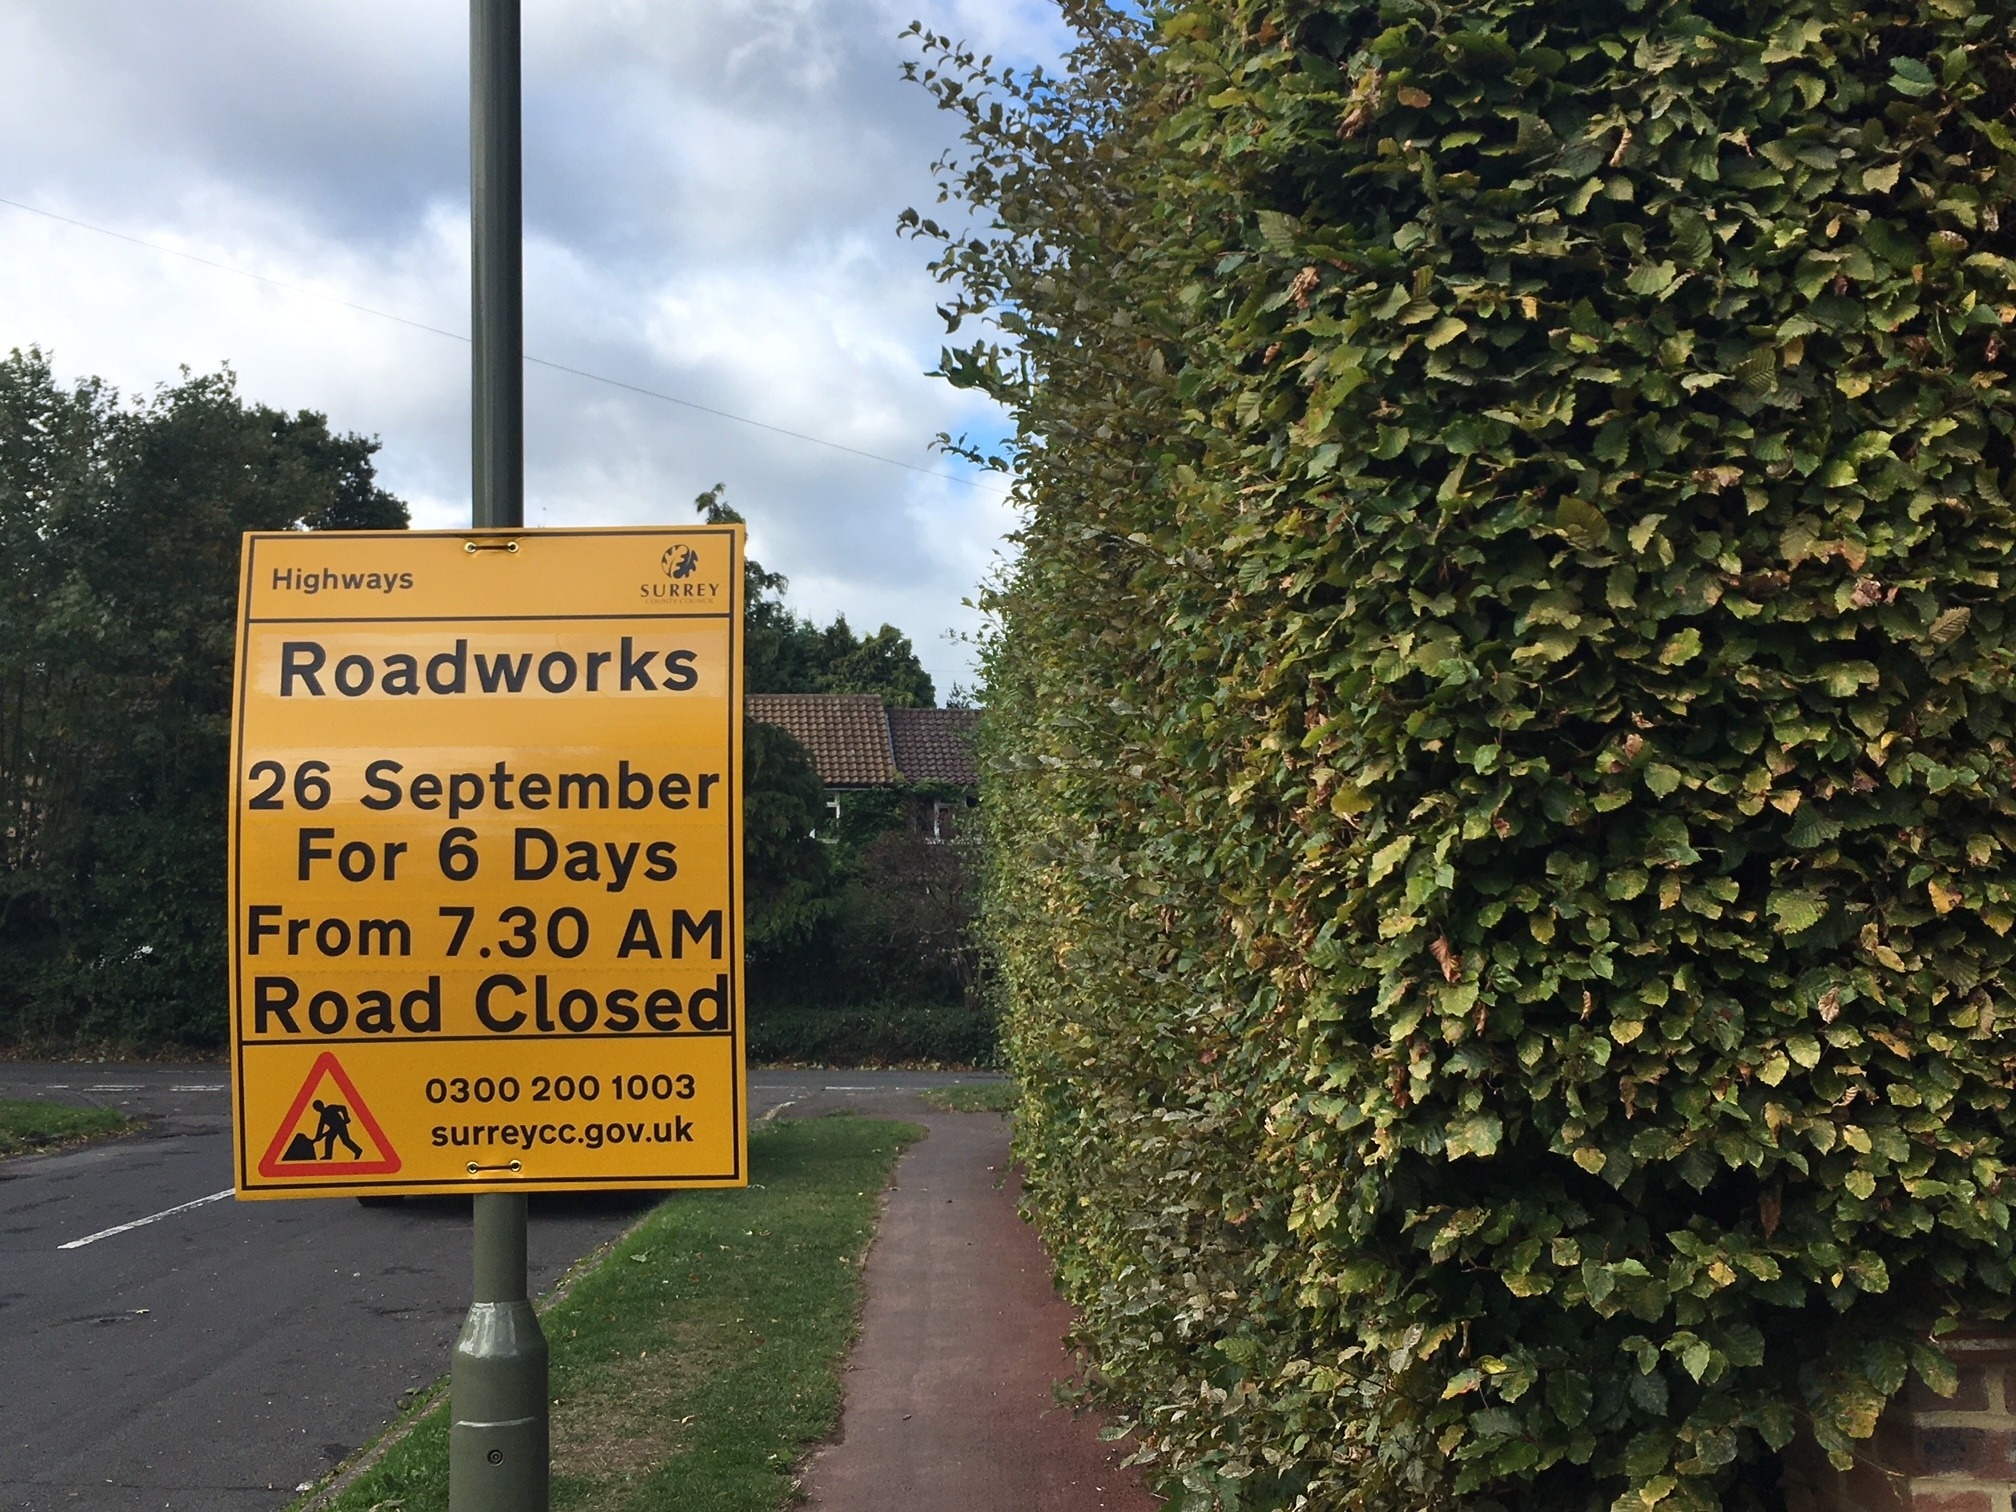 Roadworks continue in Claygate, Surrey. Credit LDR. Cleared for use